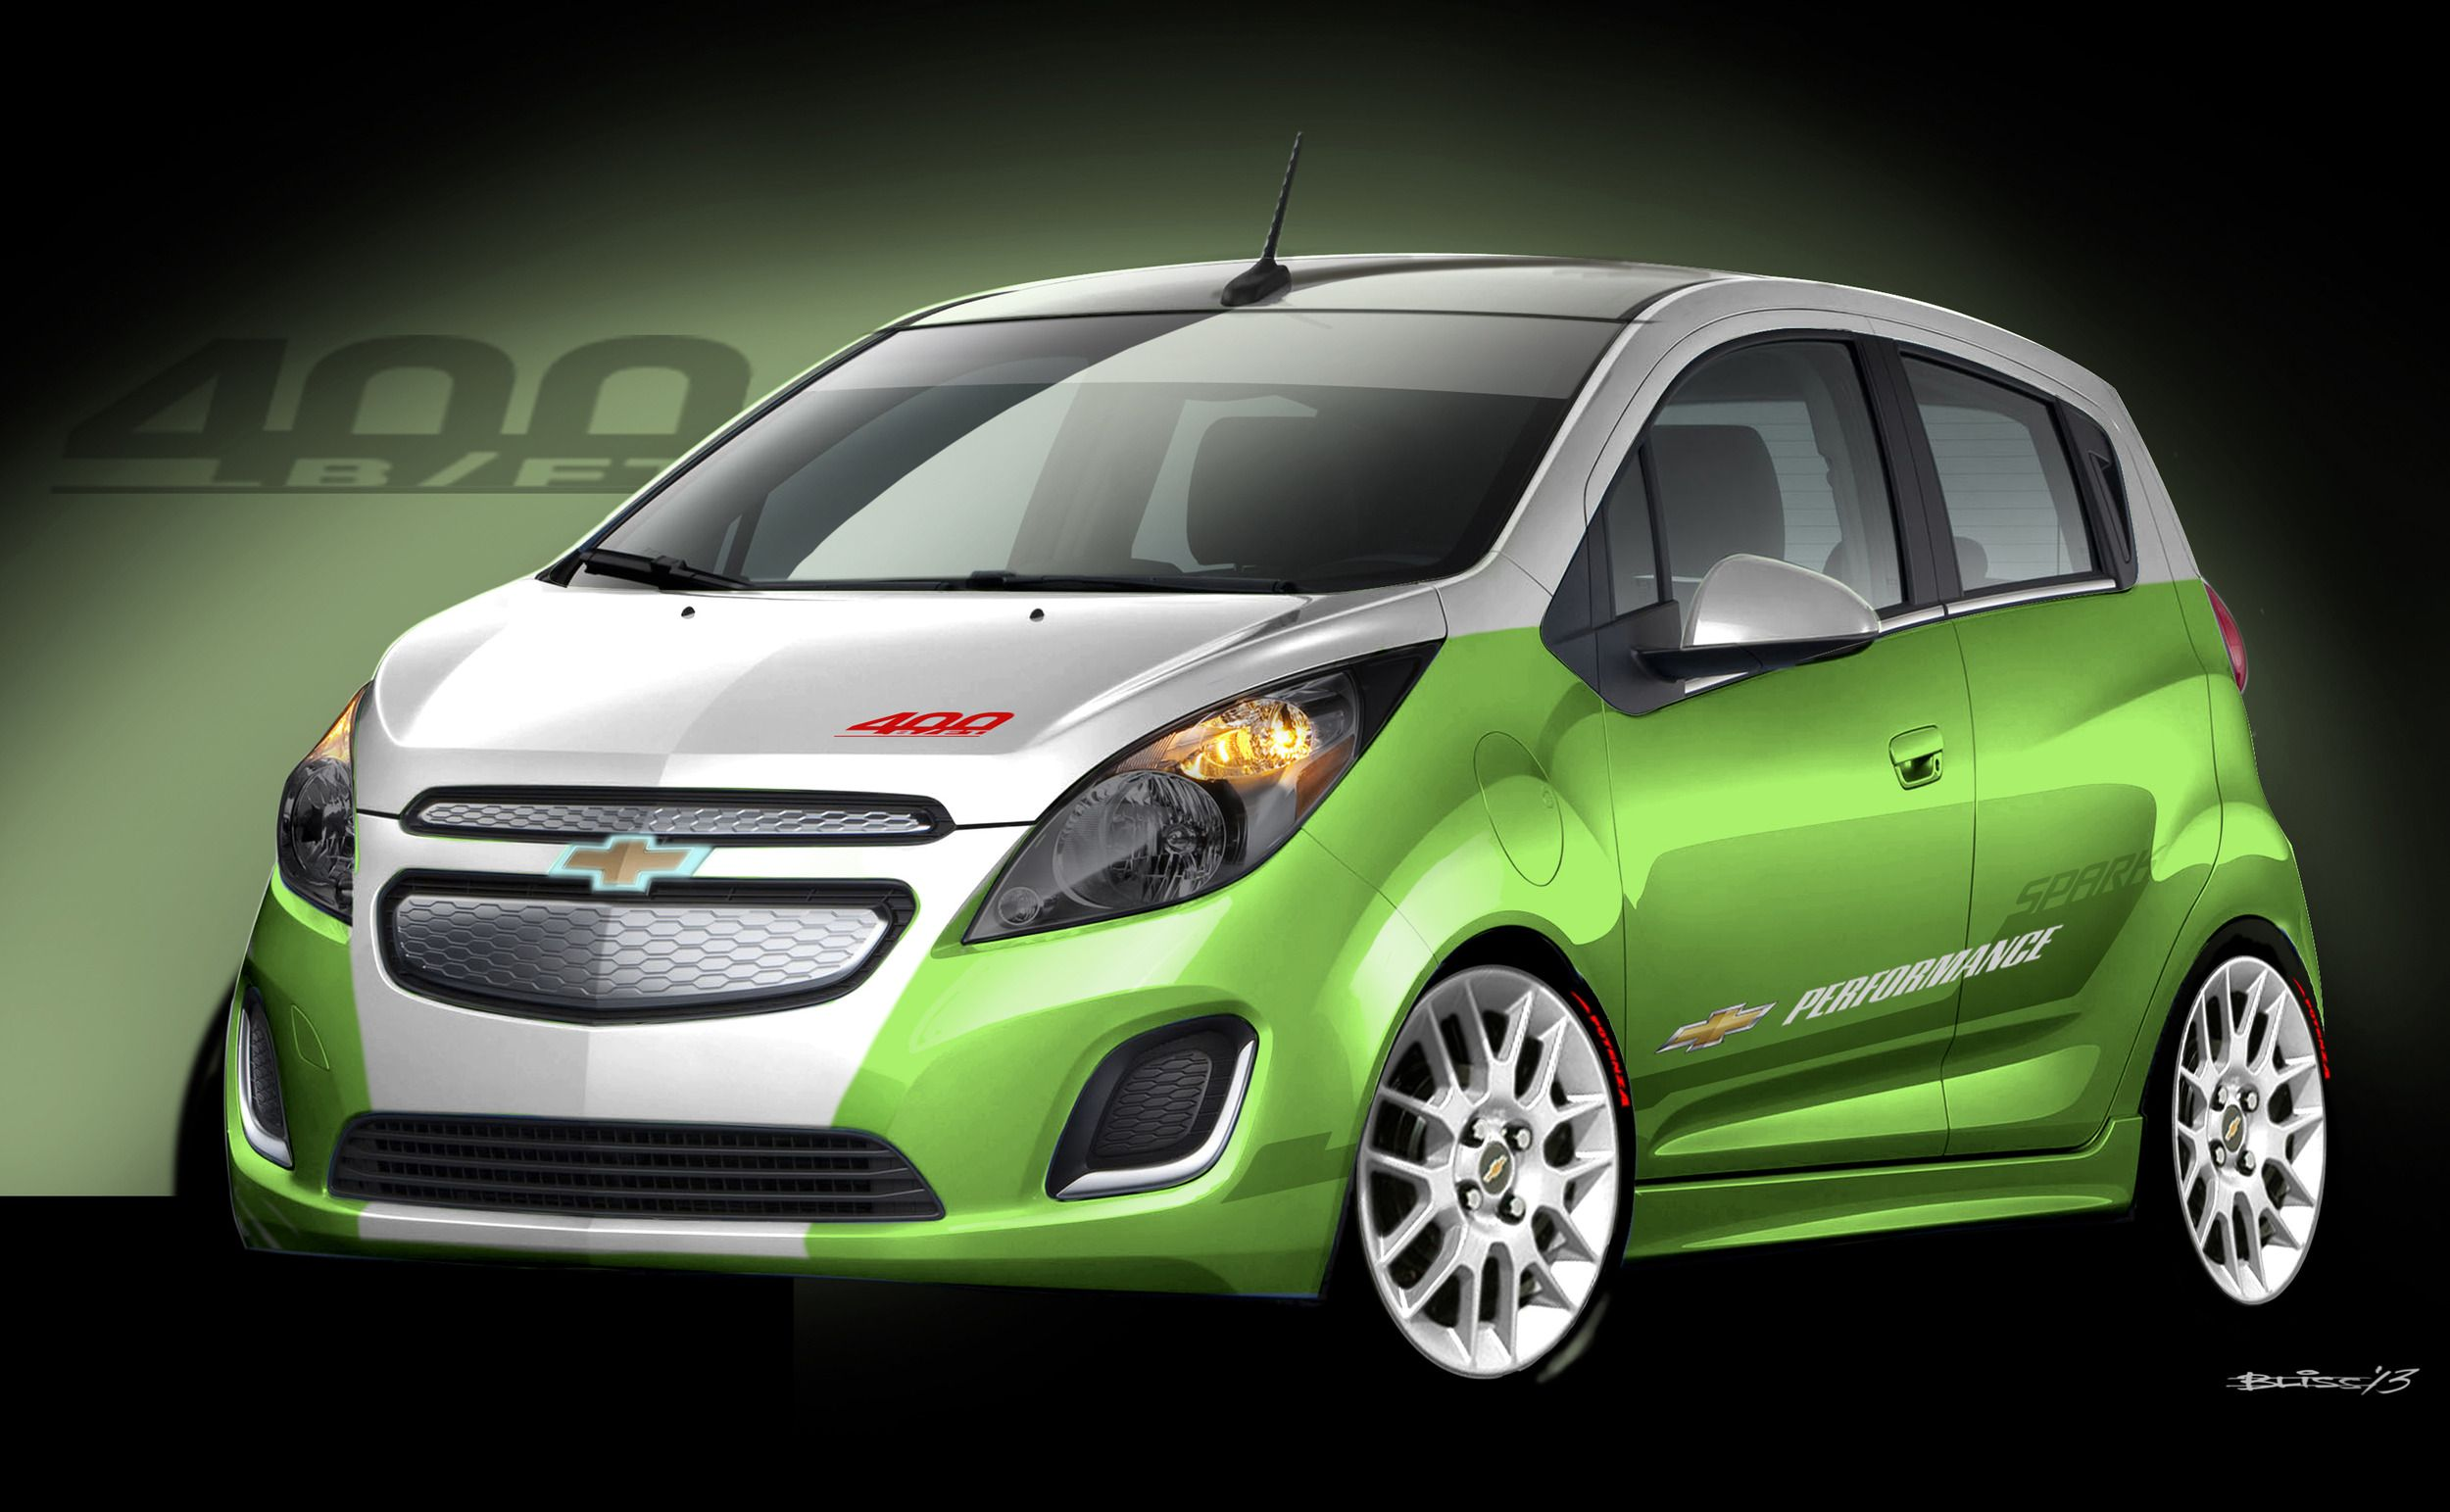 2015 chevrolet spark wallpaper desktop http carwallspaper com 2015 chevrolet spark wallpaper desktop car wallpapers collection pinterest city car